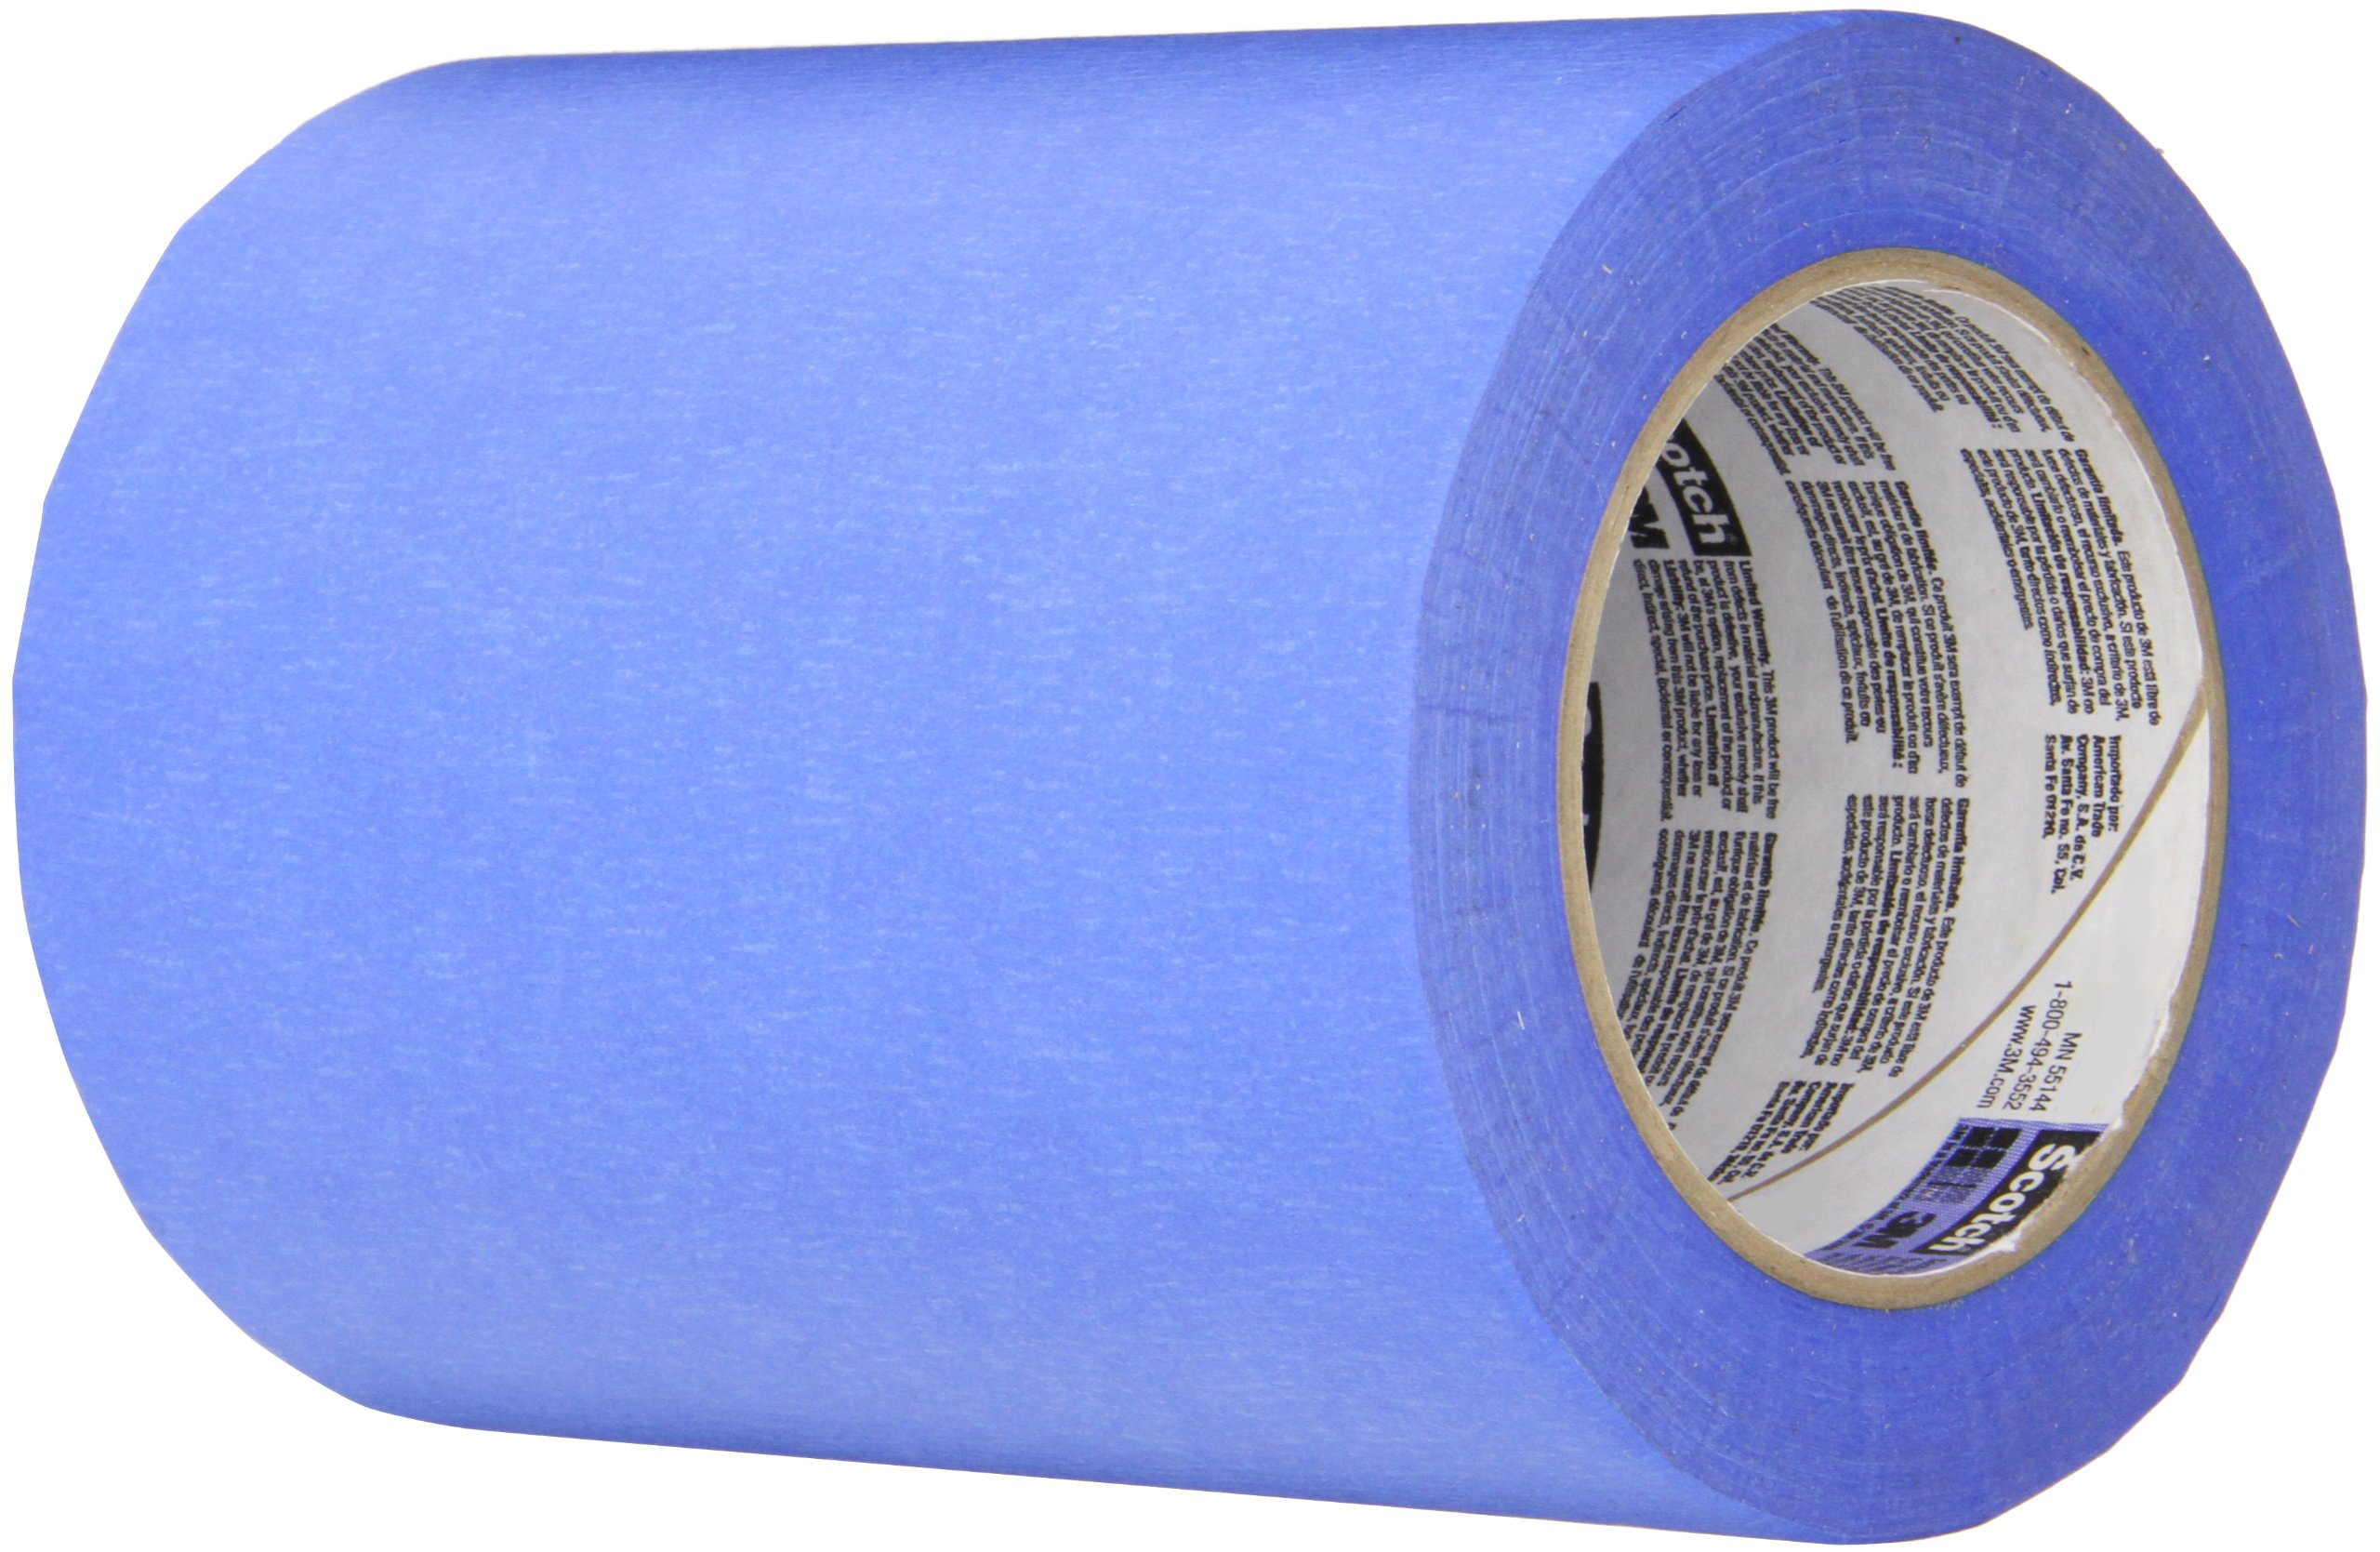 3M 2090 Scotch-Blue Painters Tape, 6'' width x 60yd length (1 roll) by TapeCase